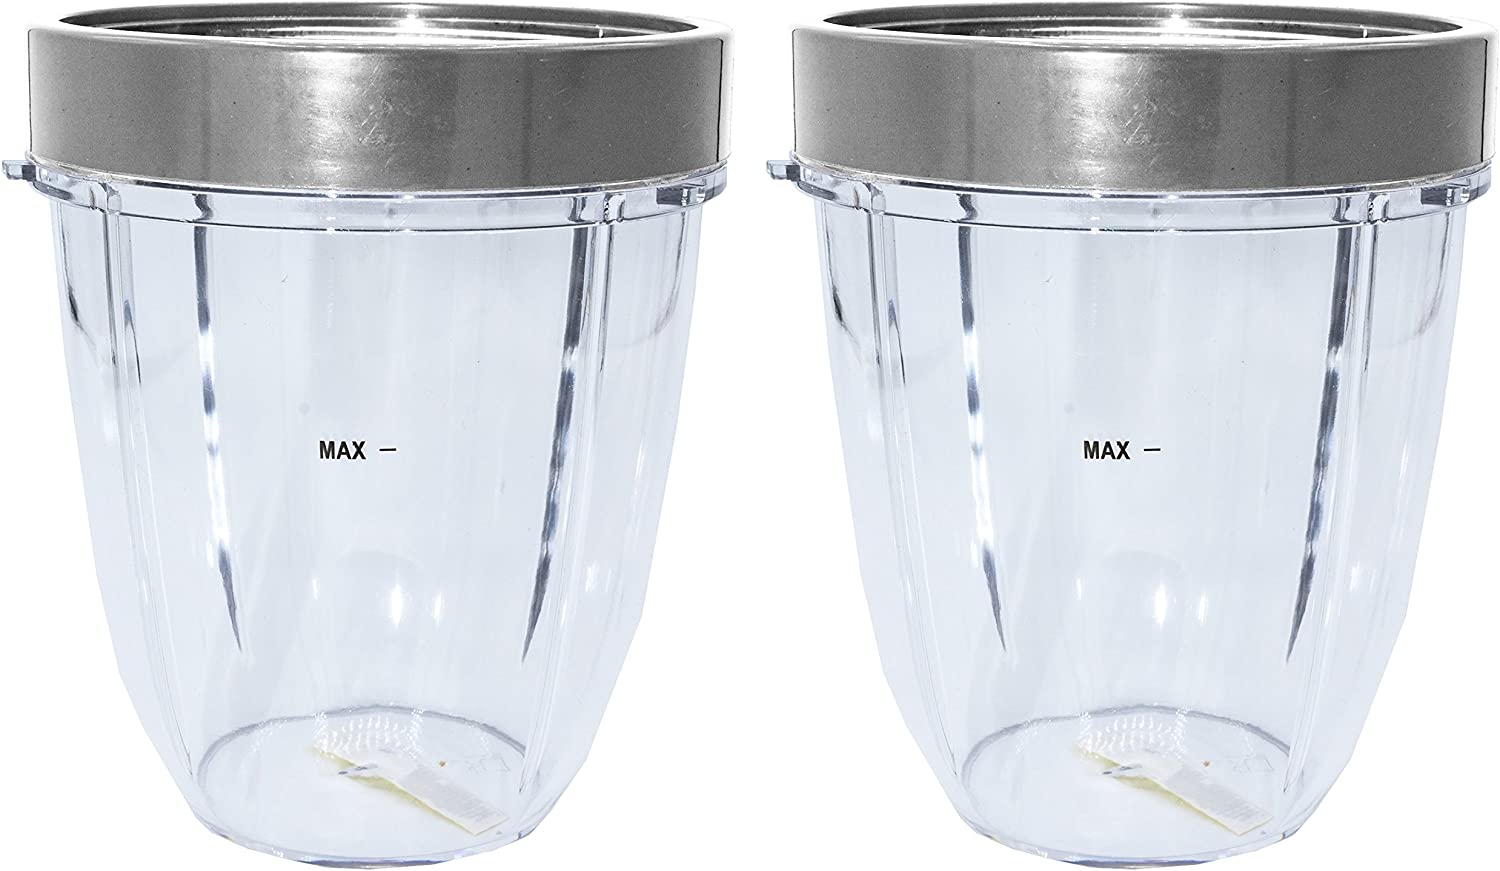 Blendin Replacement Parts, Compatible with Nutribullet 600W and 900W Blender Juicer (2 Short 2 Lip Rings)